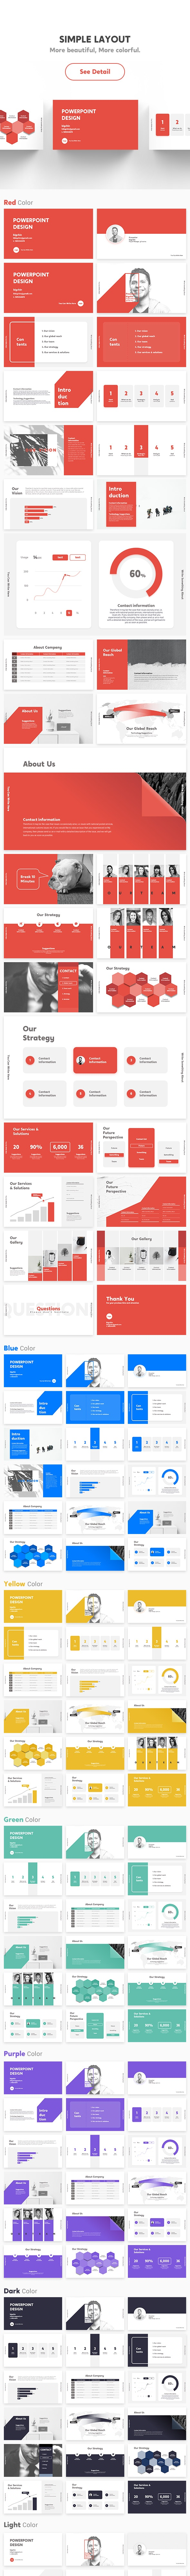 Creative Business Simple Layout PowerPoint Template - PowerPoint Templates Presentation Templates